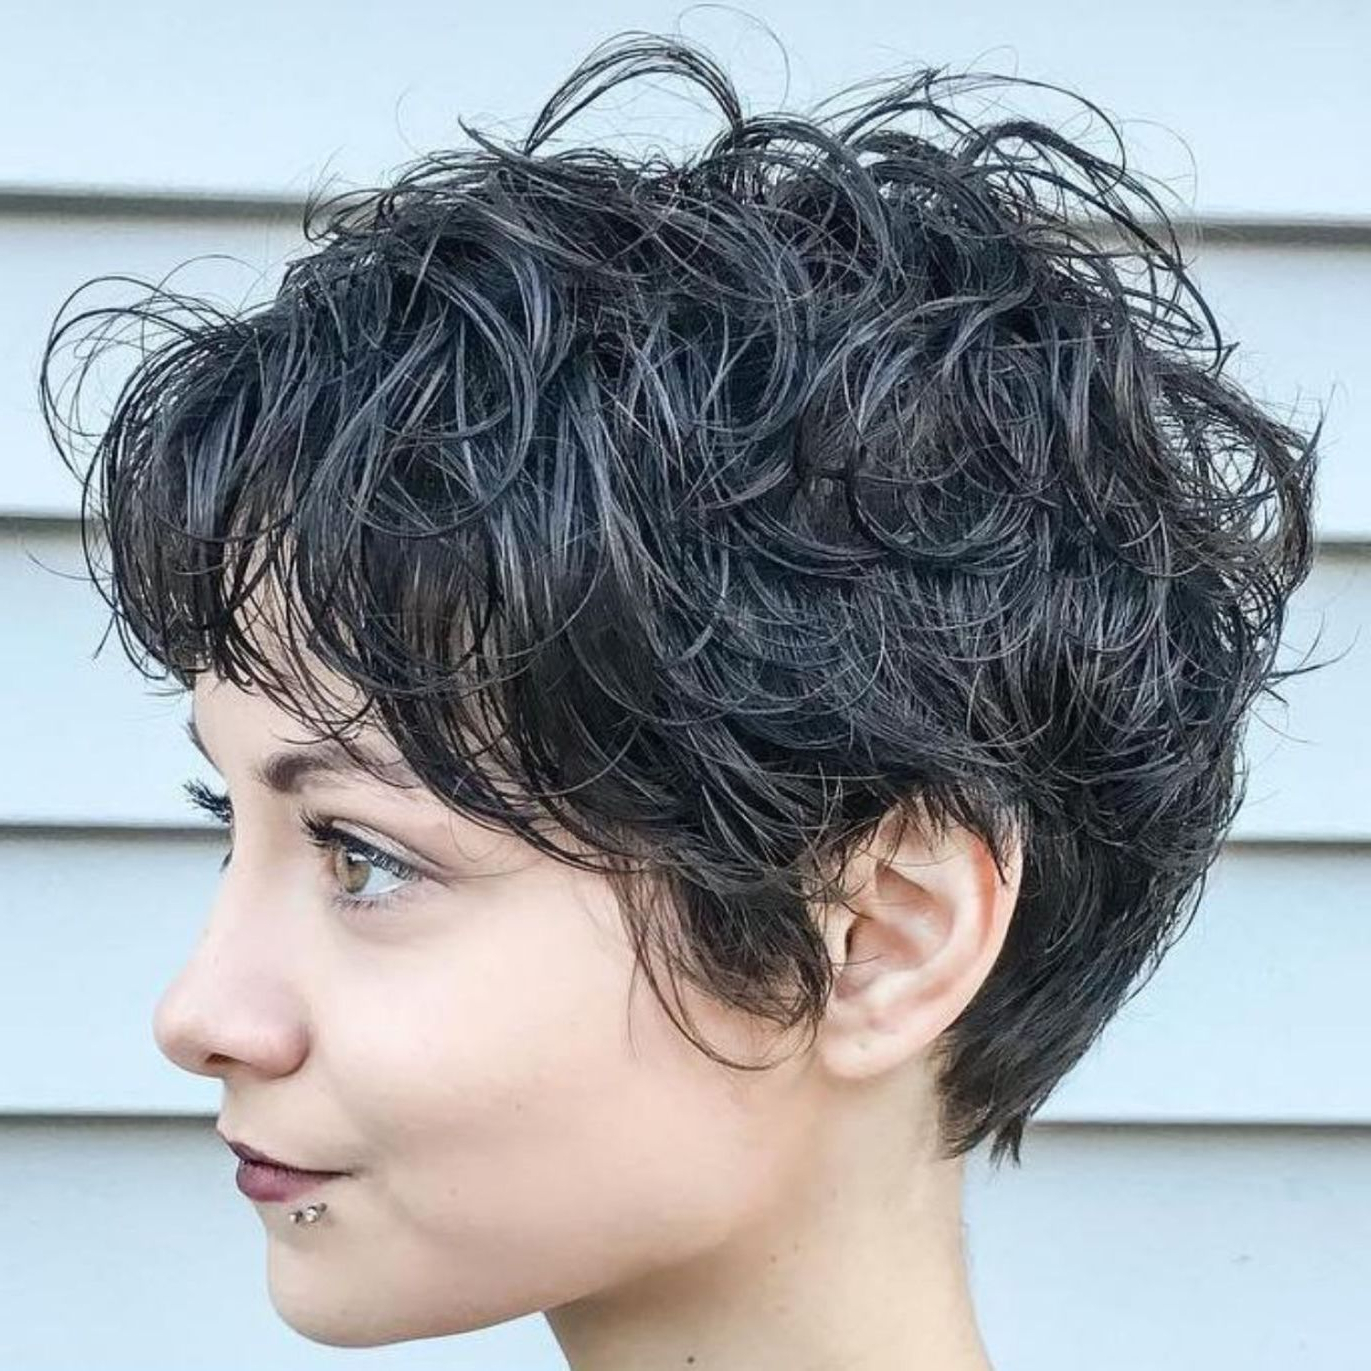 60 Short Shag Hairstyles That You Simply Can't Miss In 2018 | Short Within Long Messy Curly Pixie Haircuts (Gallery 7 of 25)